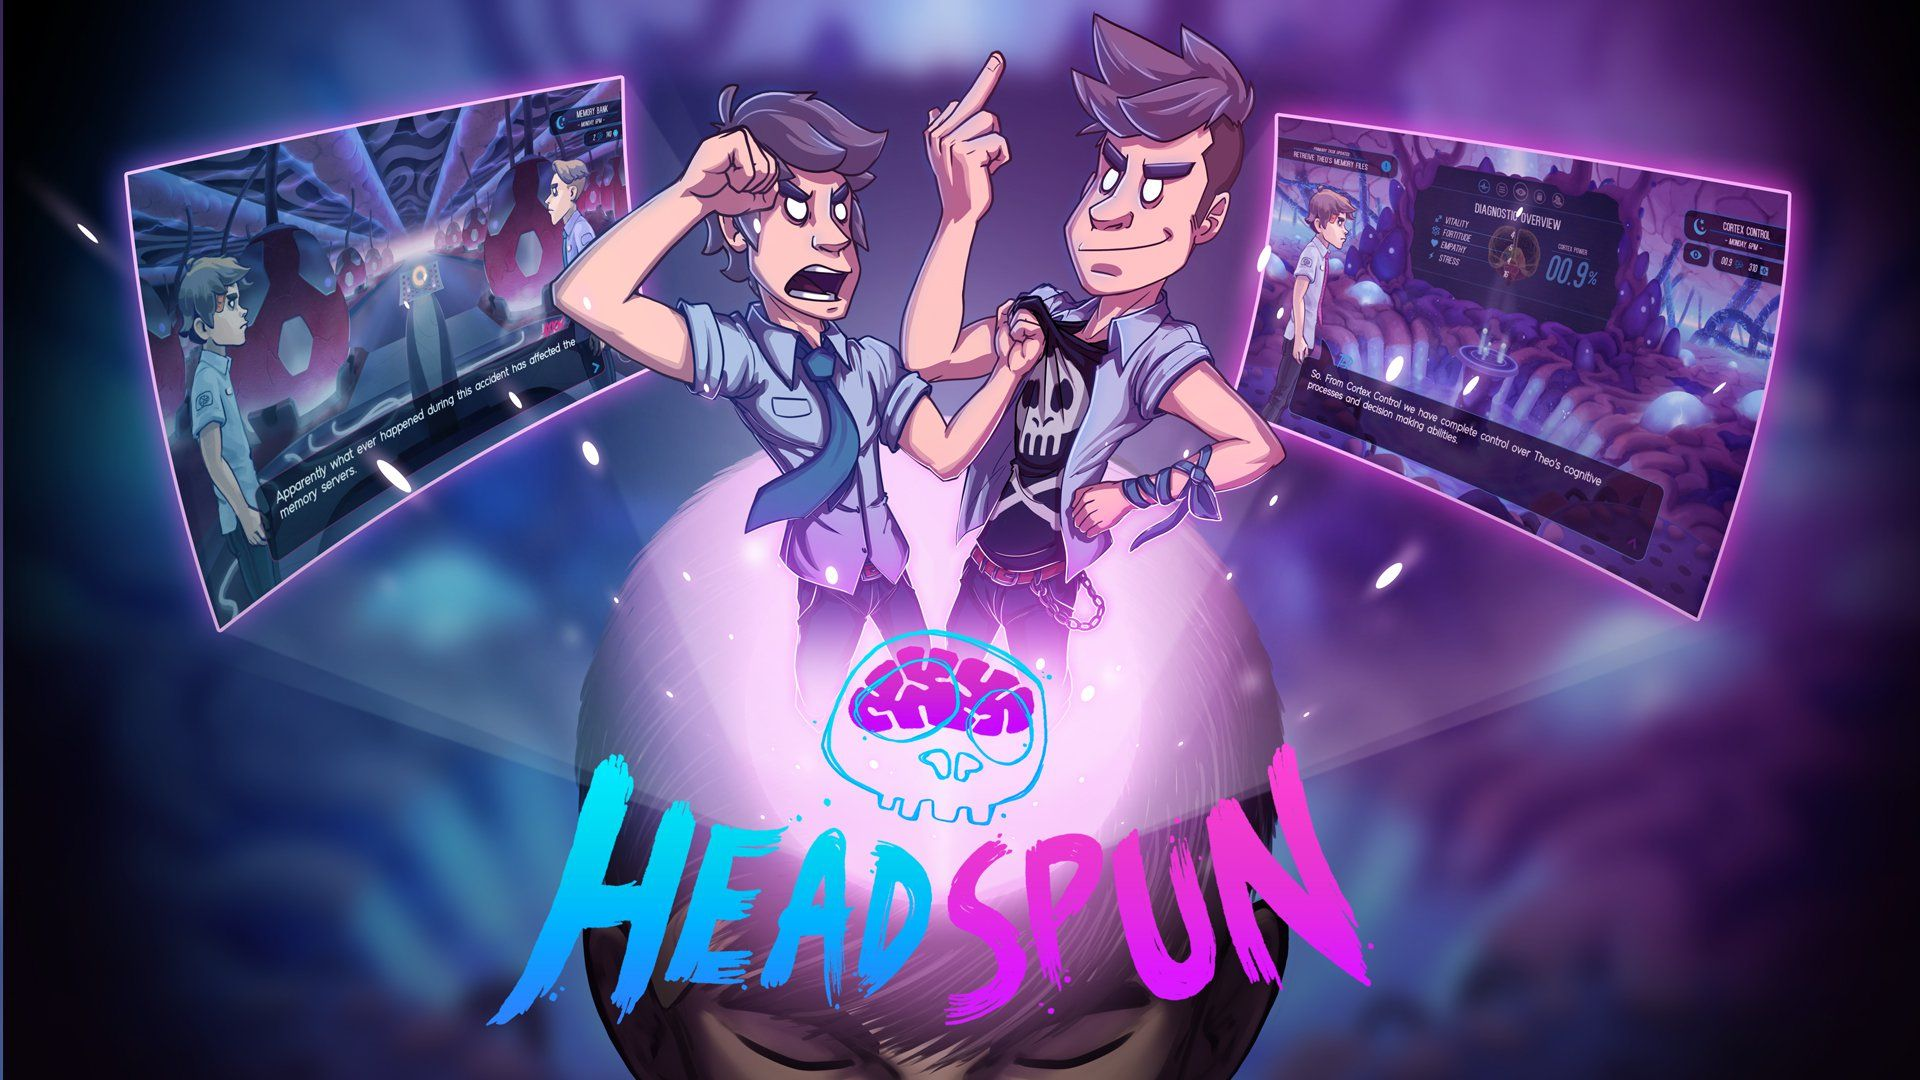 New FMV Adventure Game Headspun Announced For PC & Console